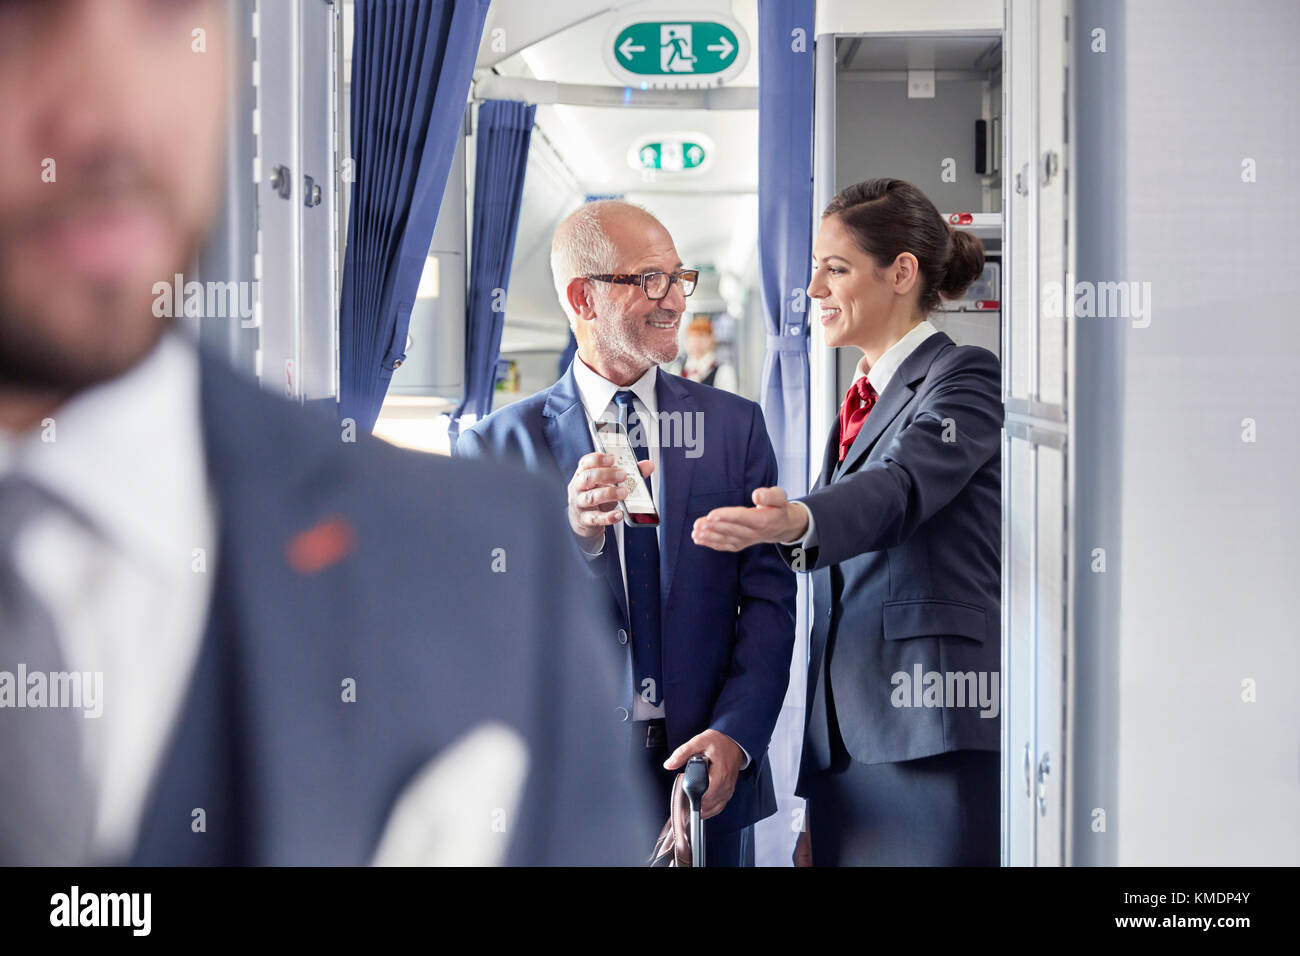 Flight attendant helping businessman with digital boarding pass on airplane - Stock Image